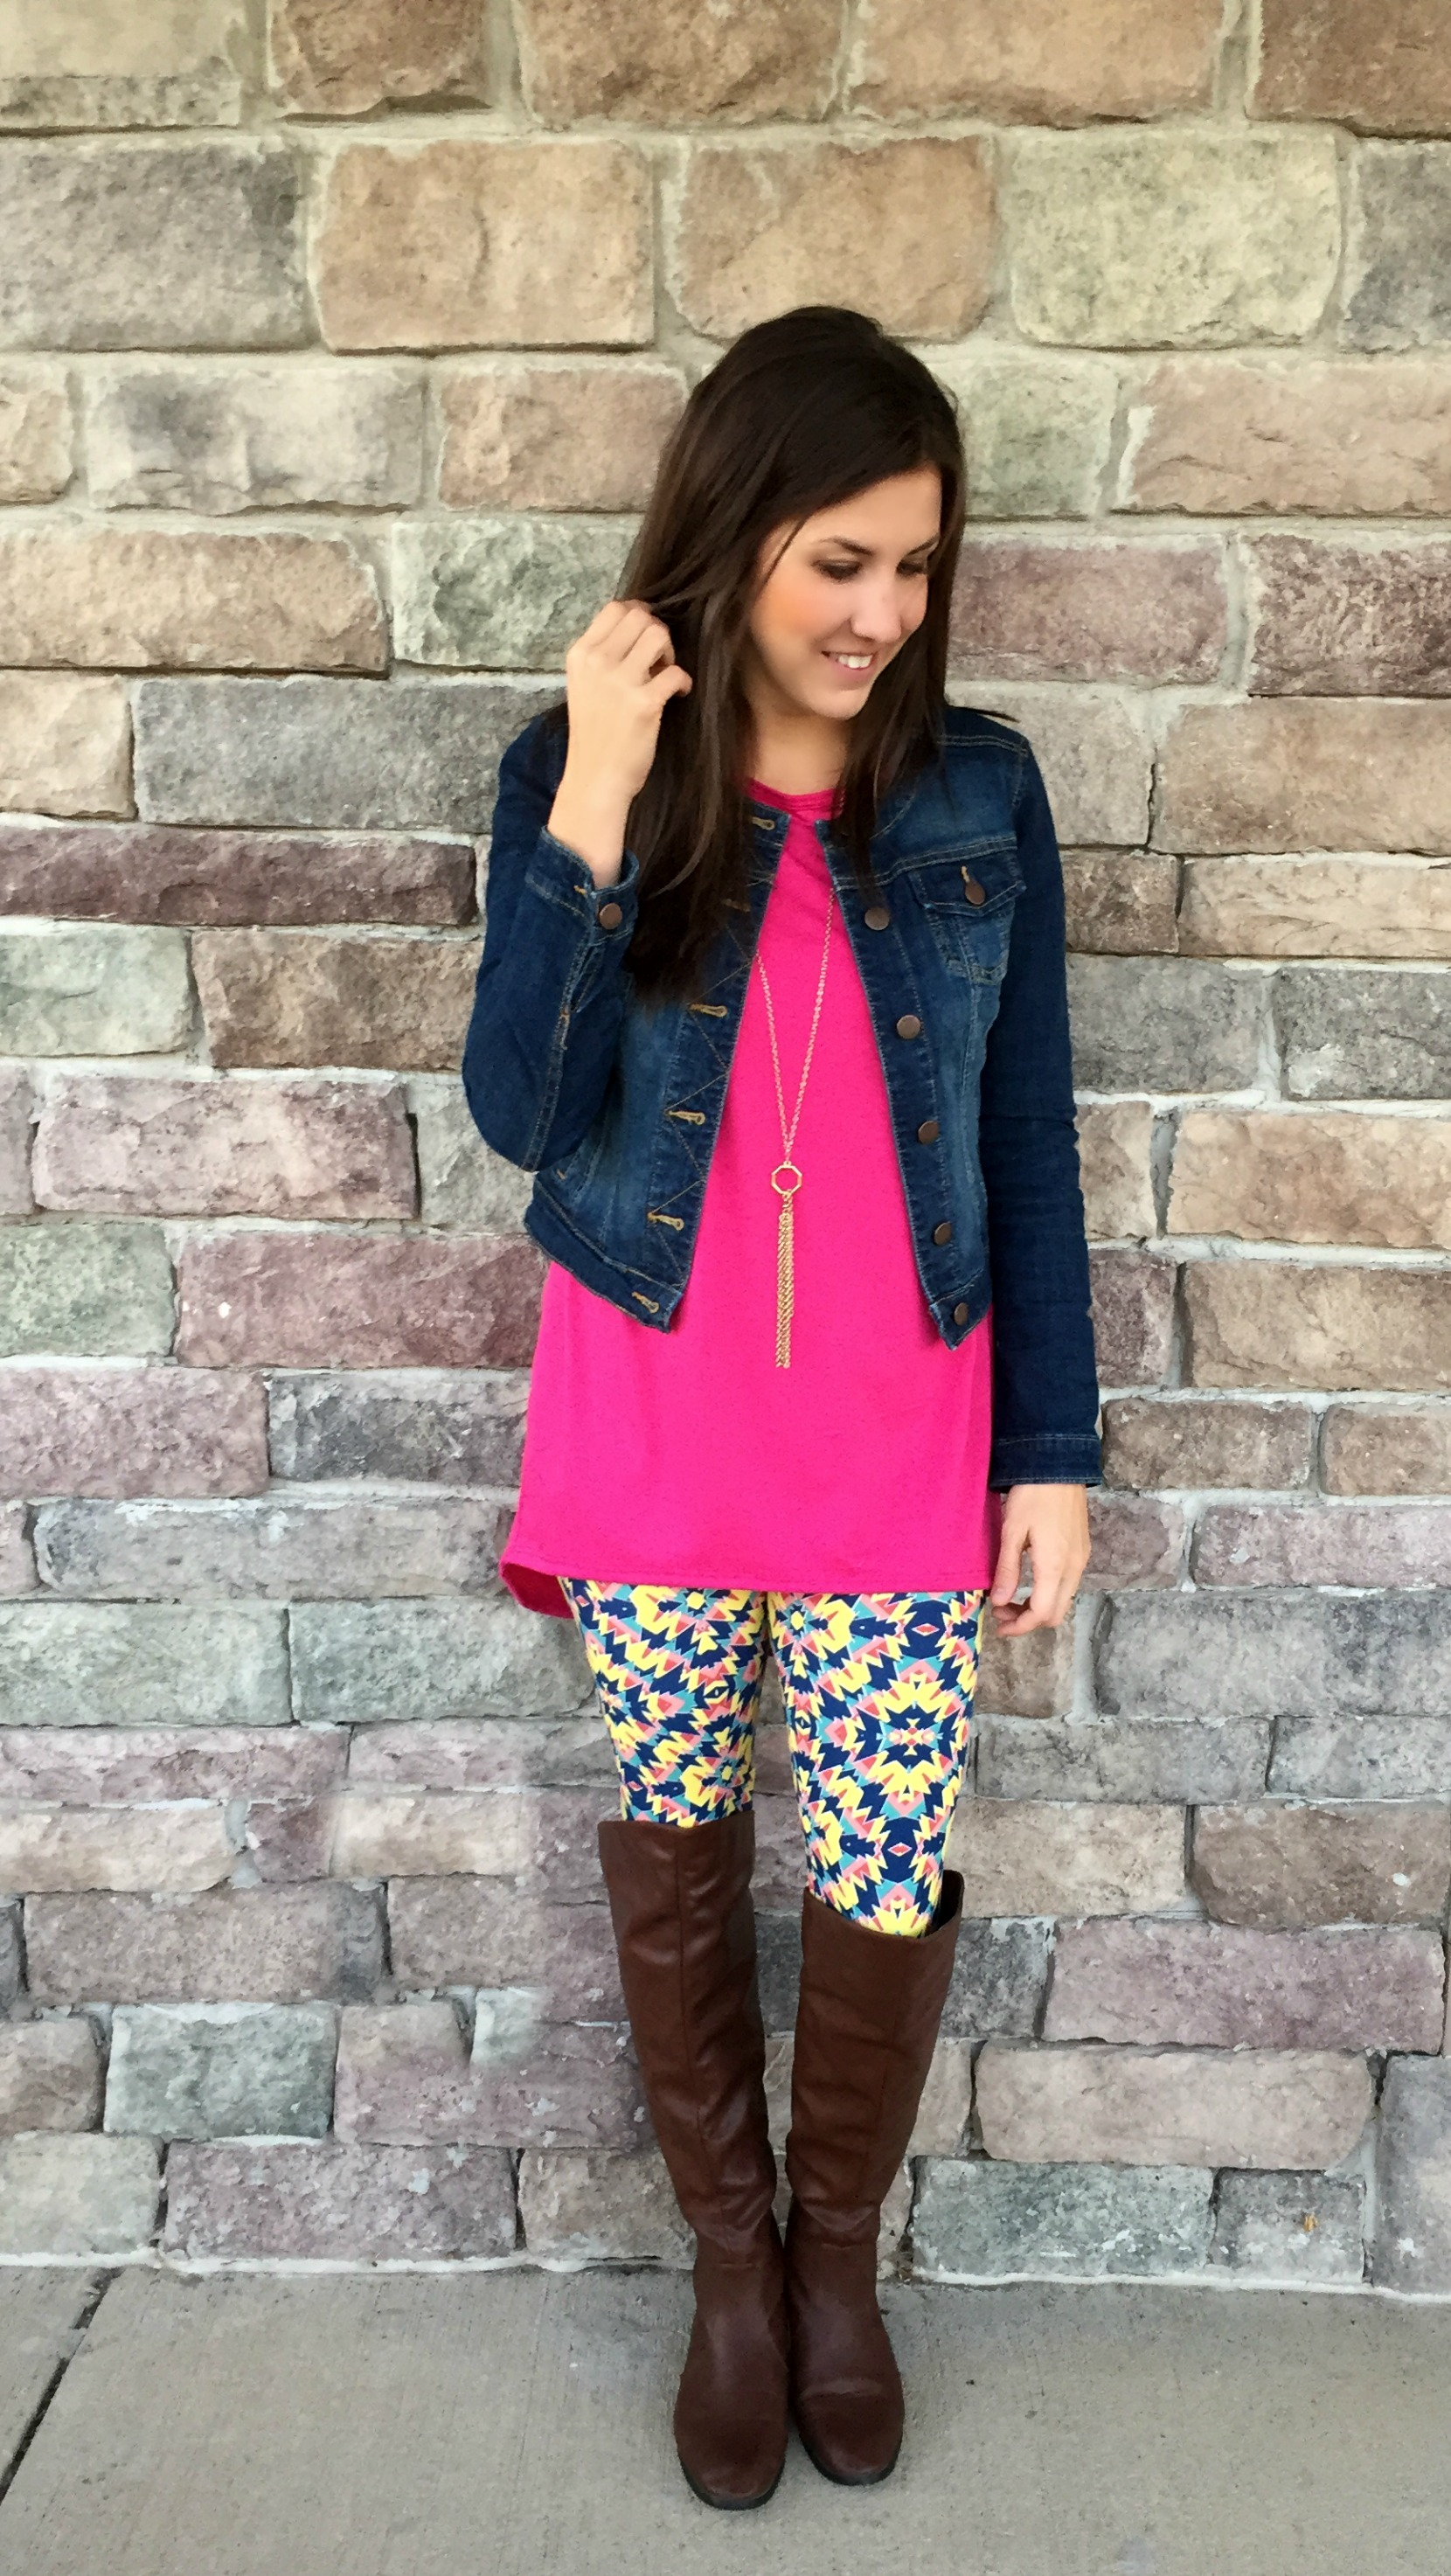 LuLaRoe Clothing u0026 $100 Gift Card Giveaway - momma in flip flops